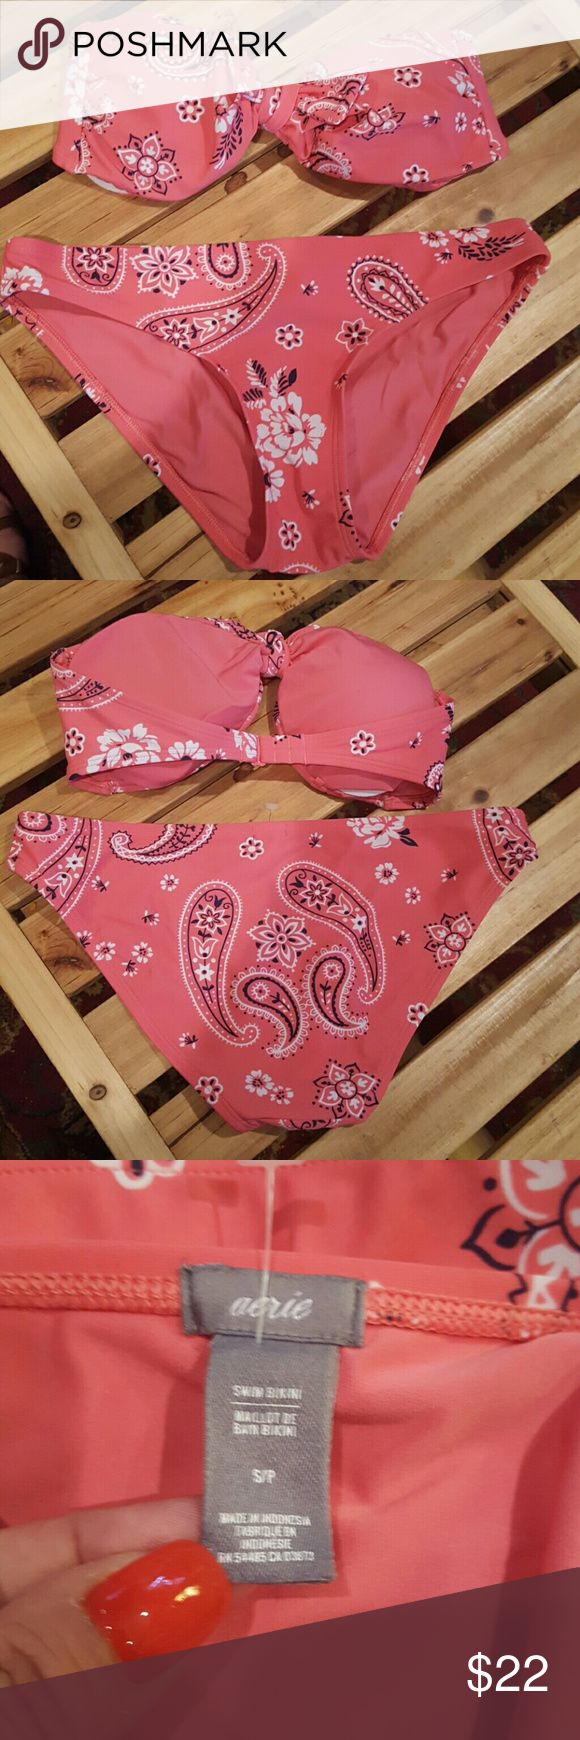 NWOT  aerie Bandana Bikini Never worn. SO CUTE! Bandeau Bandana Print Bikini... Removable pads, in top. Front tie is also removable, if wanting more... 3 adjustments at back. aerie Swim